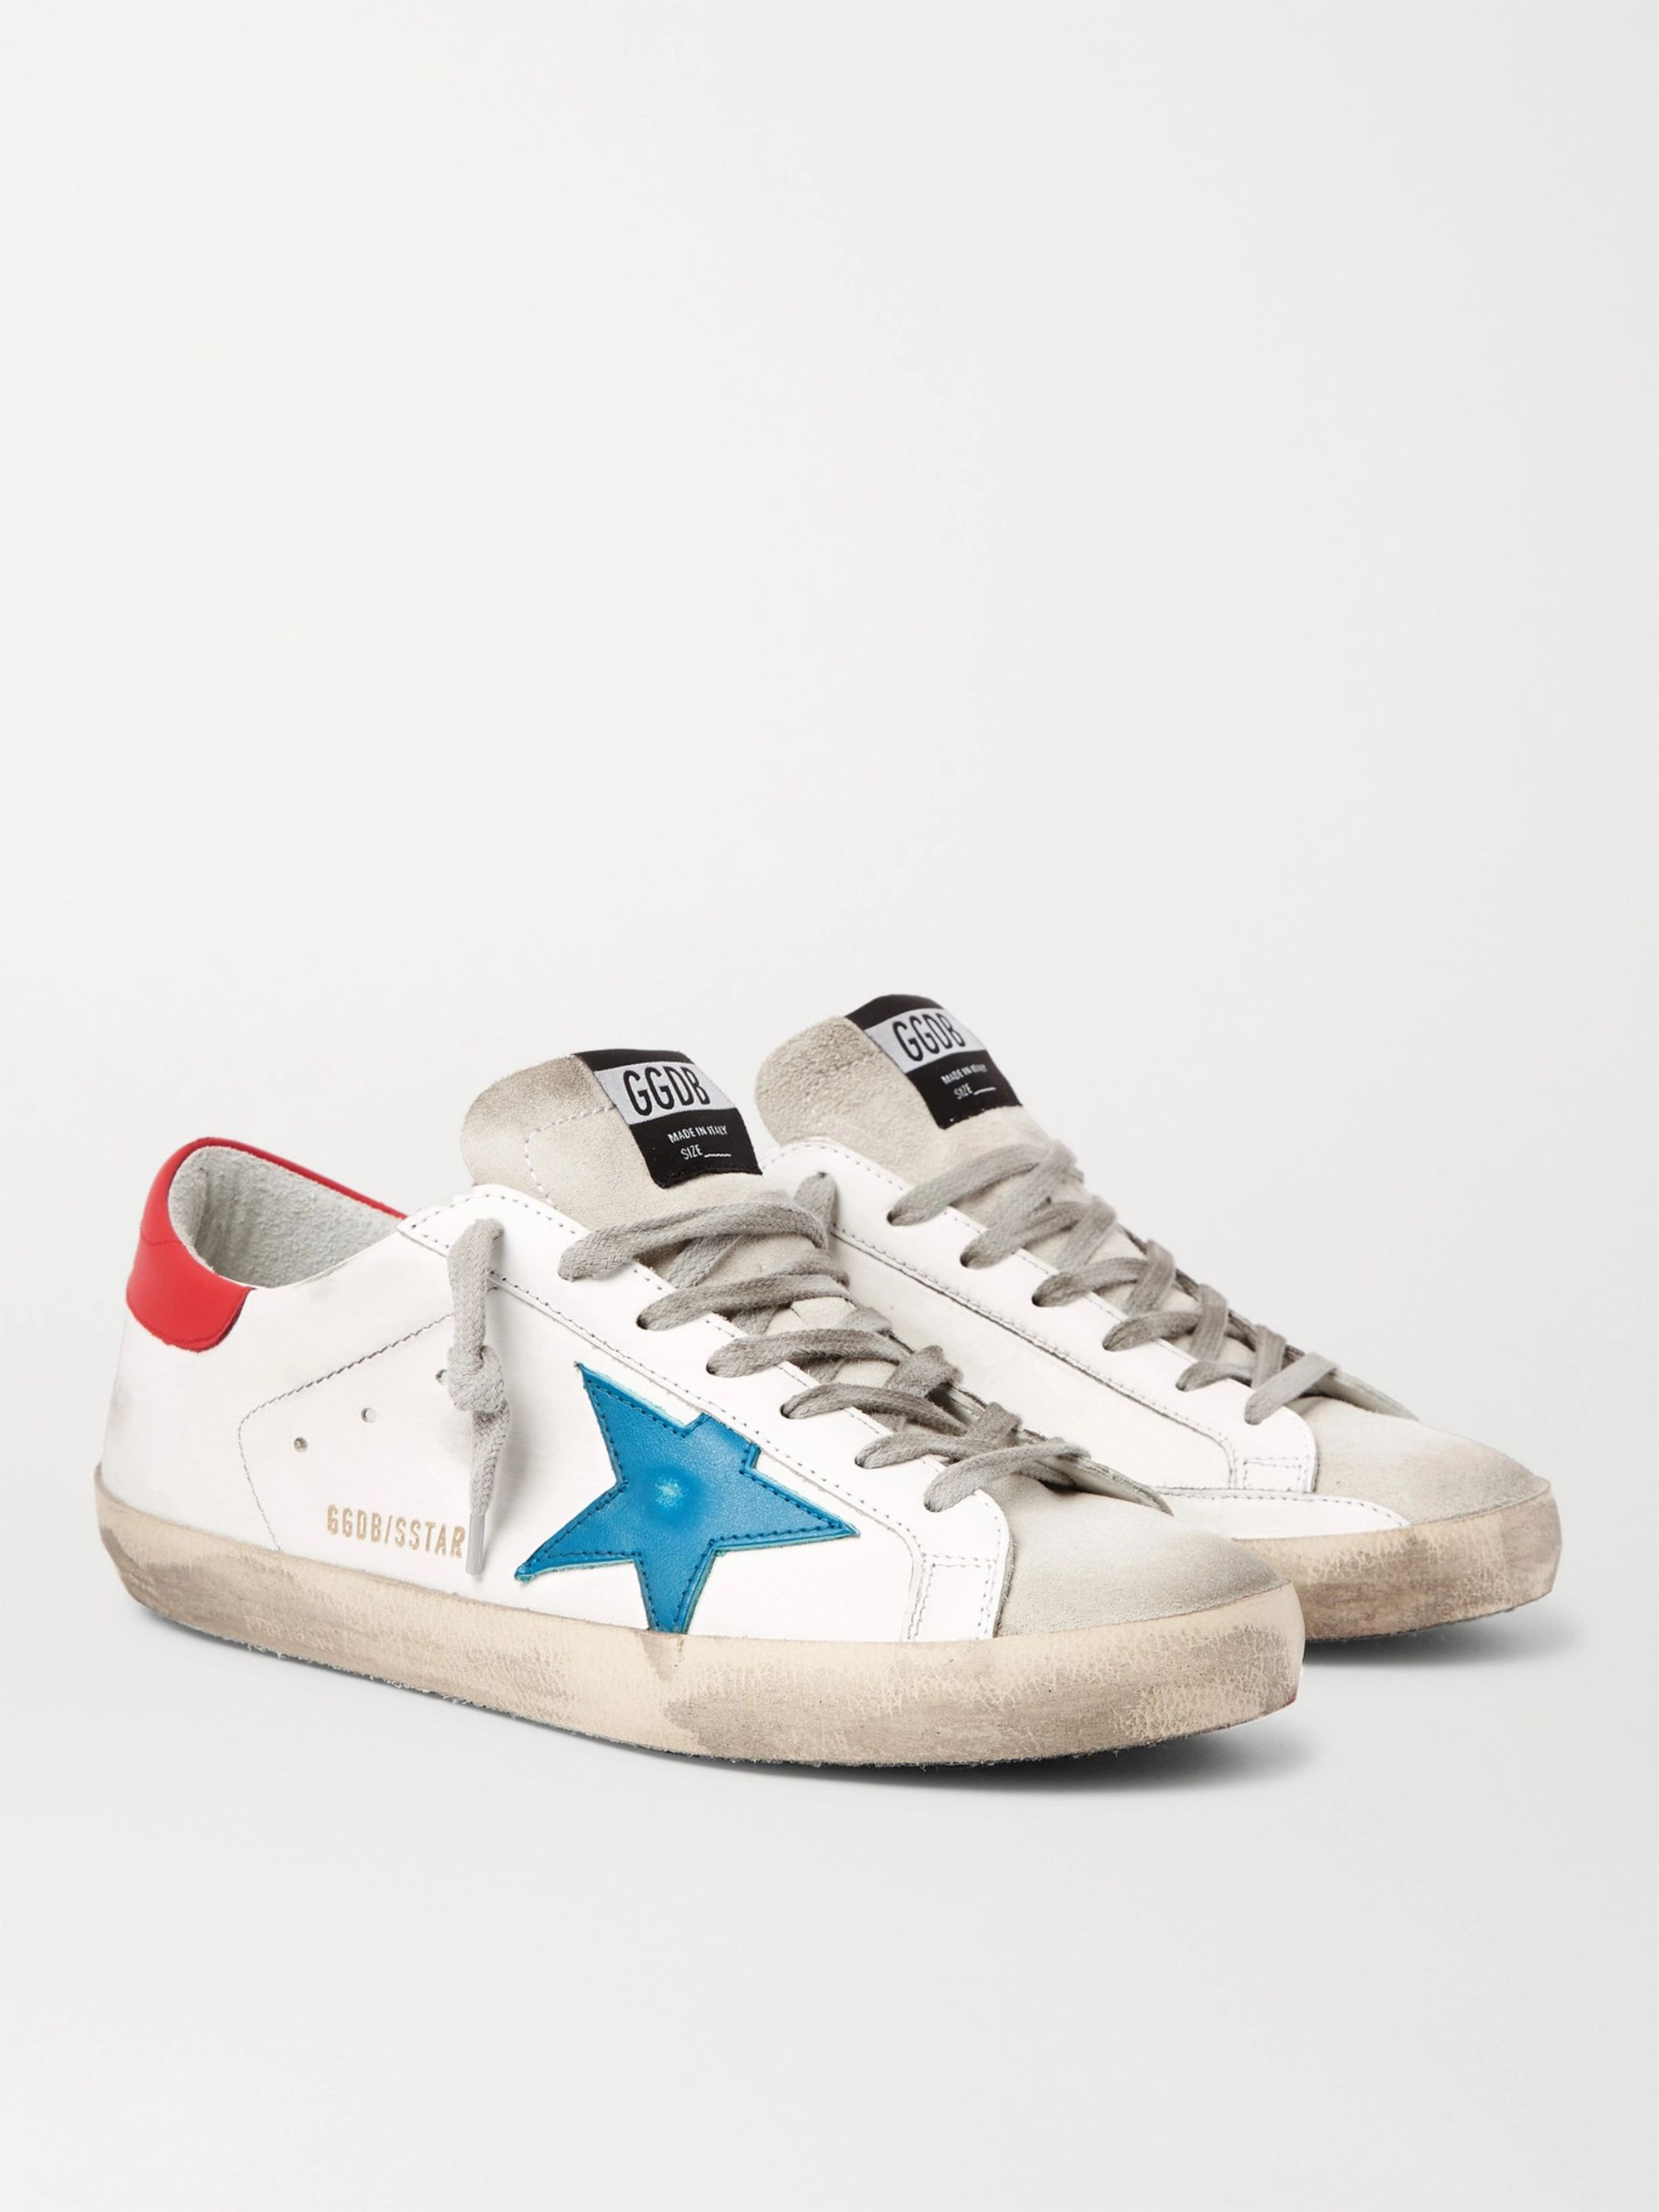 골든구스 Golden Goose Superstar Distressed Leather and Suede Sneakers,White